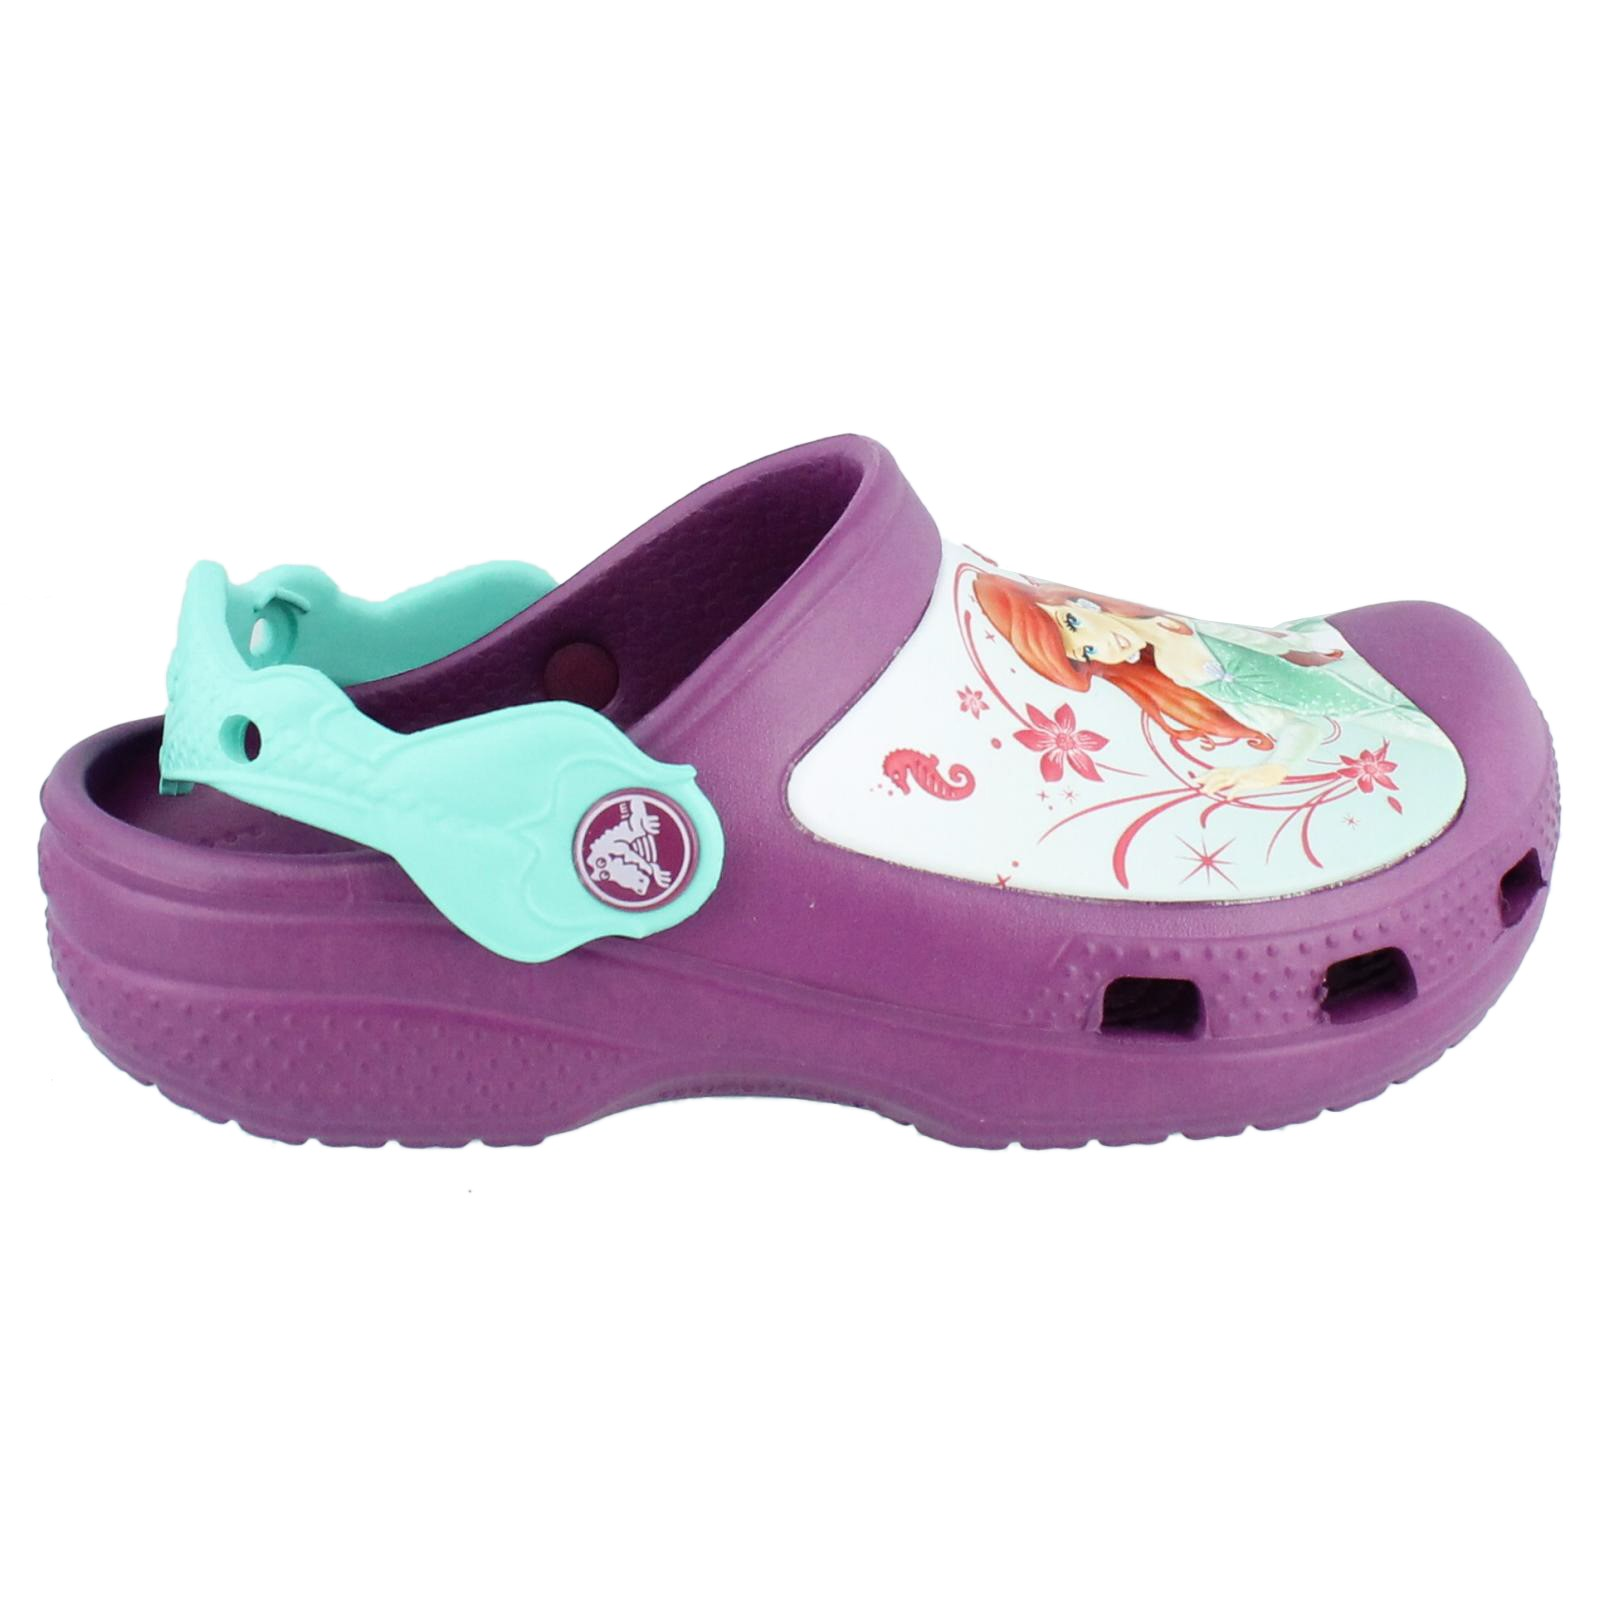 Girl's CROCS, GIRLS CASUAL CLOGS